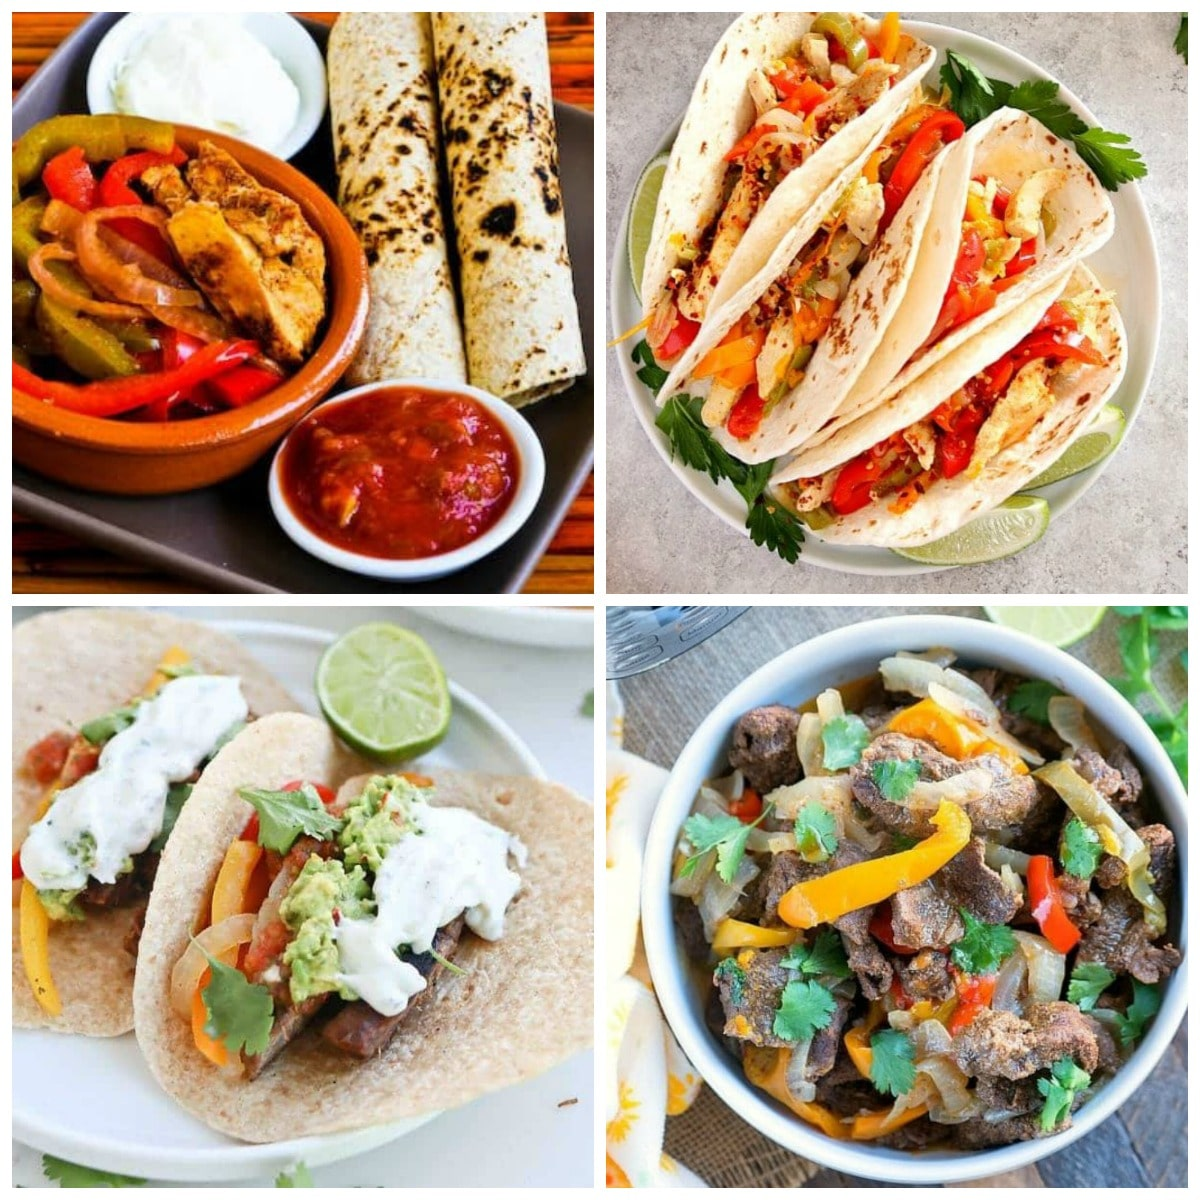 The BEST Slow Cooker or Instant Pot Fajitas from Food Bloggers collage image